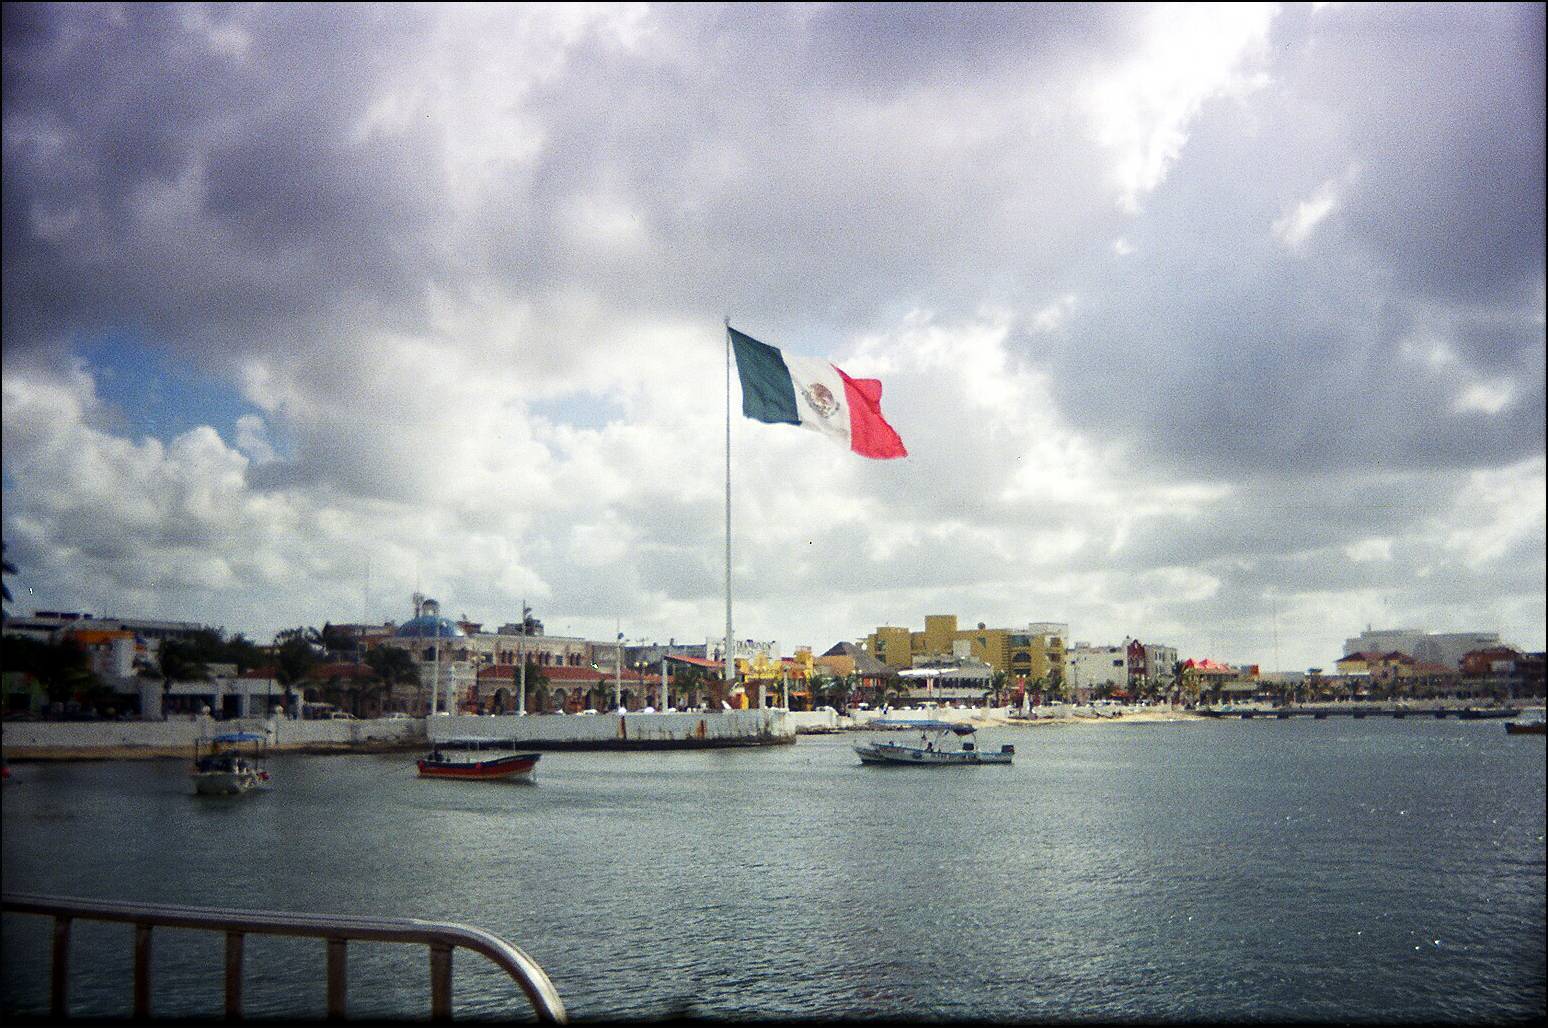 A photo of the Mexican flag near the US border